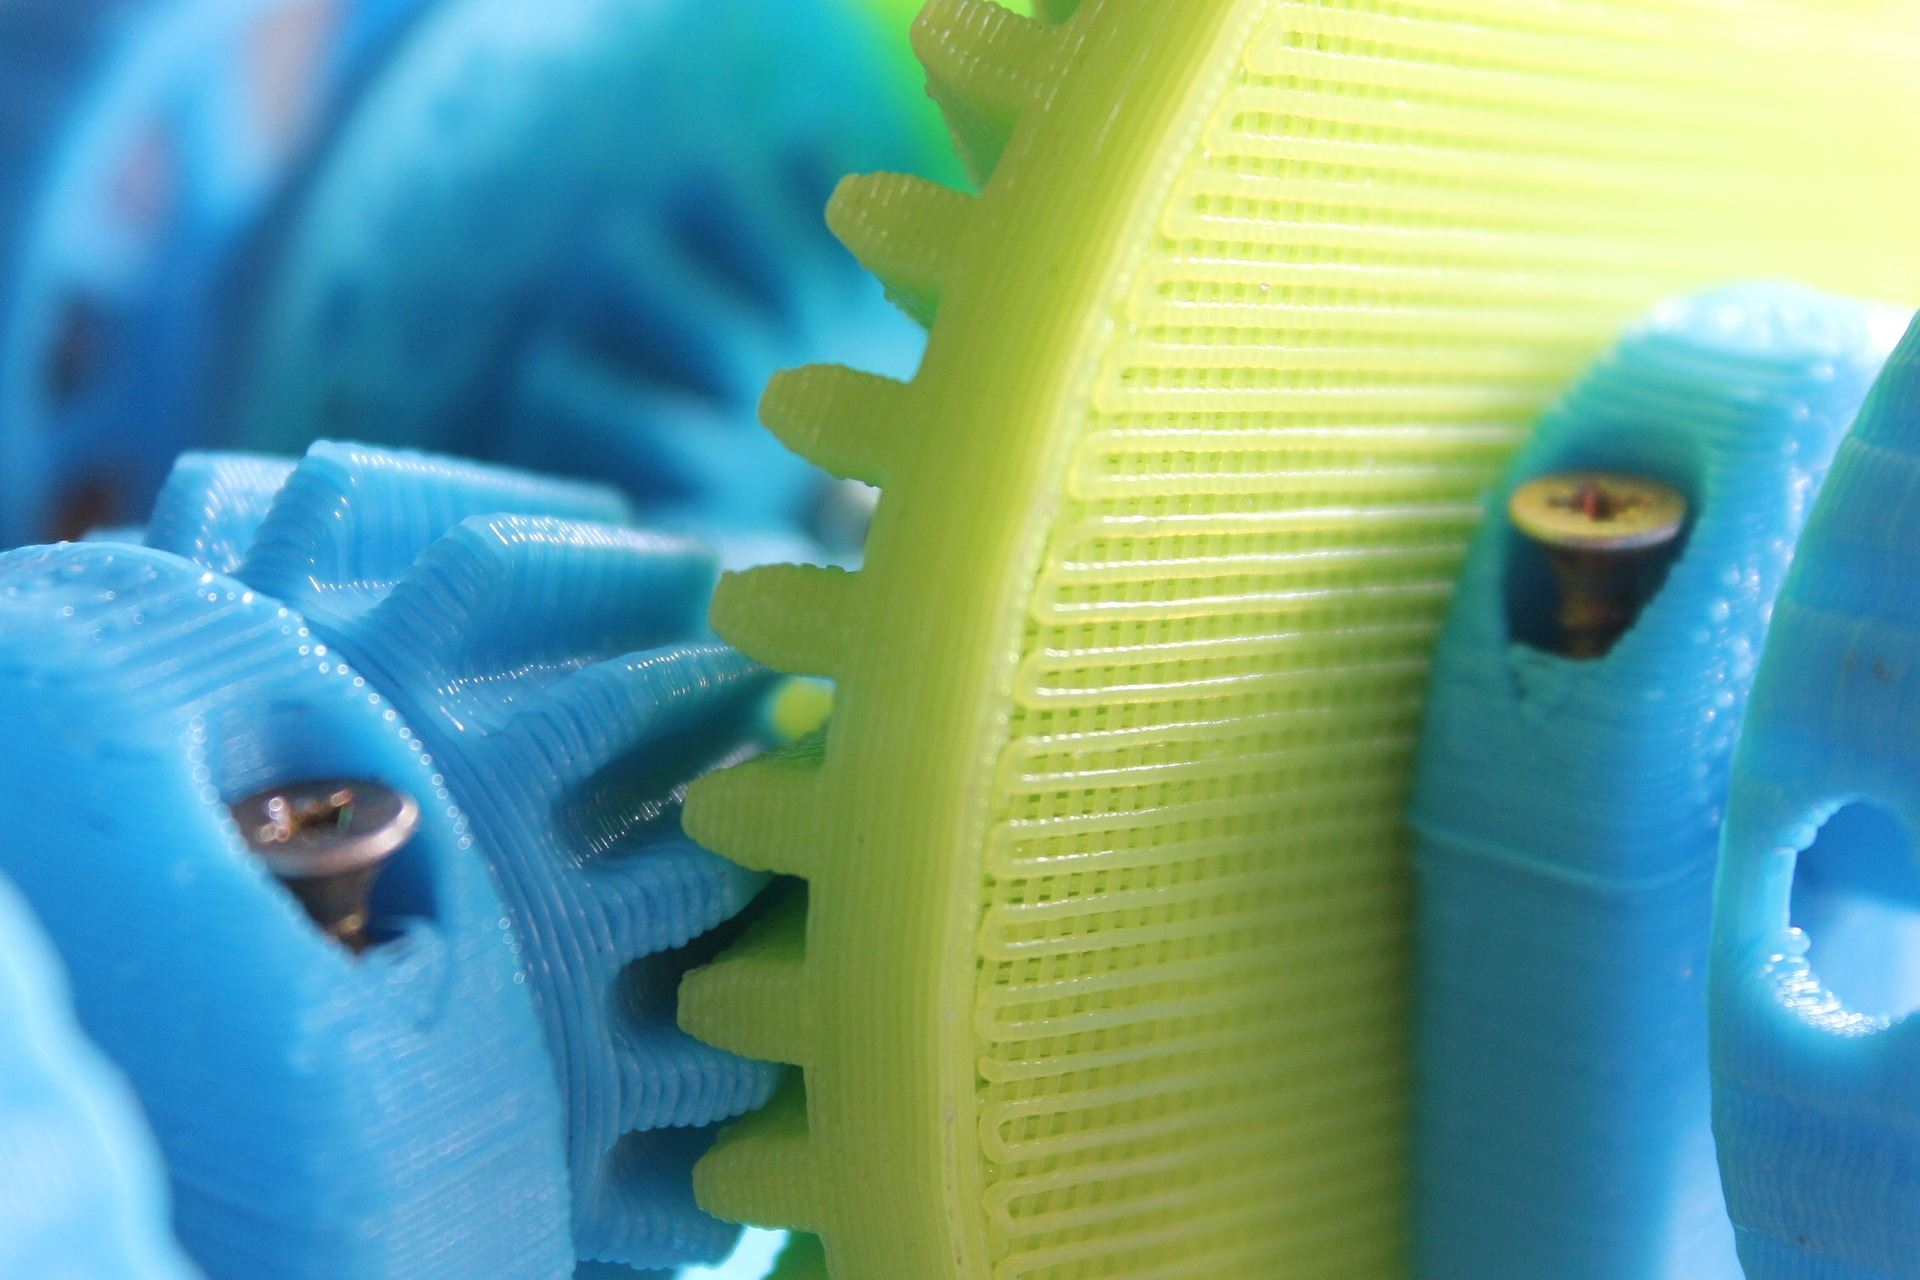 3D Printing Example Gears